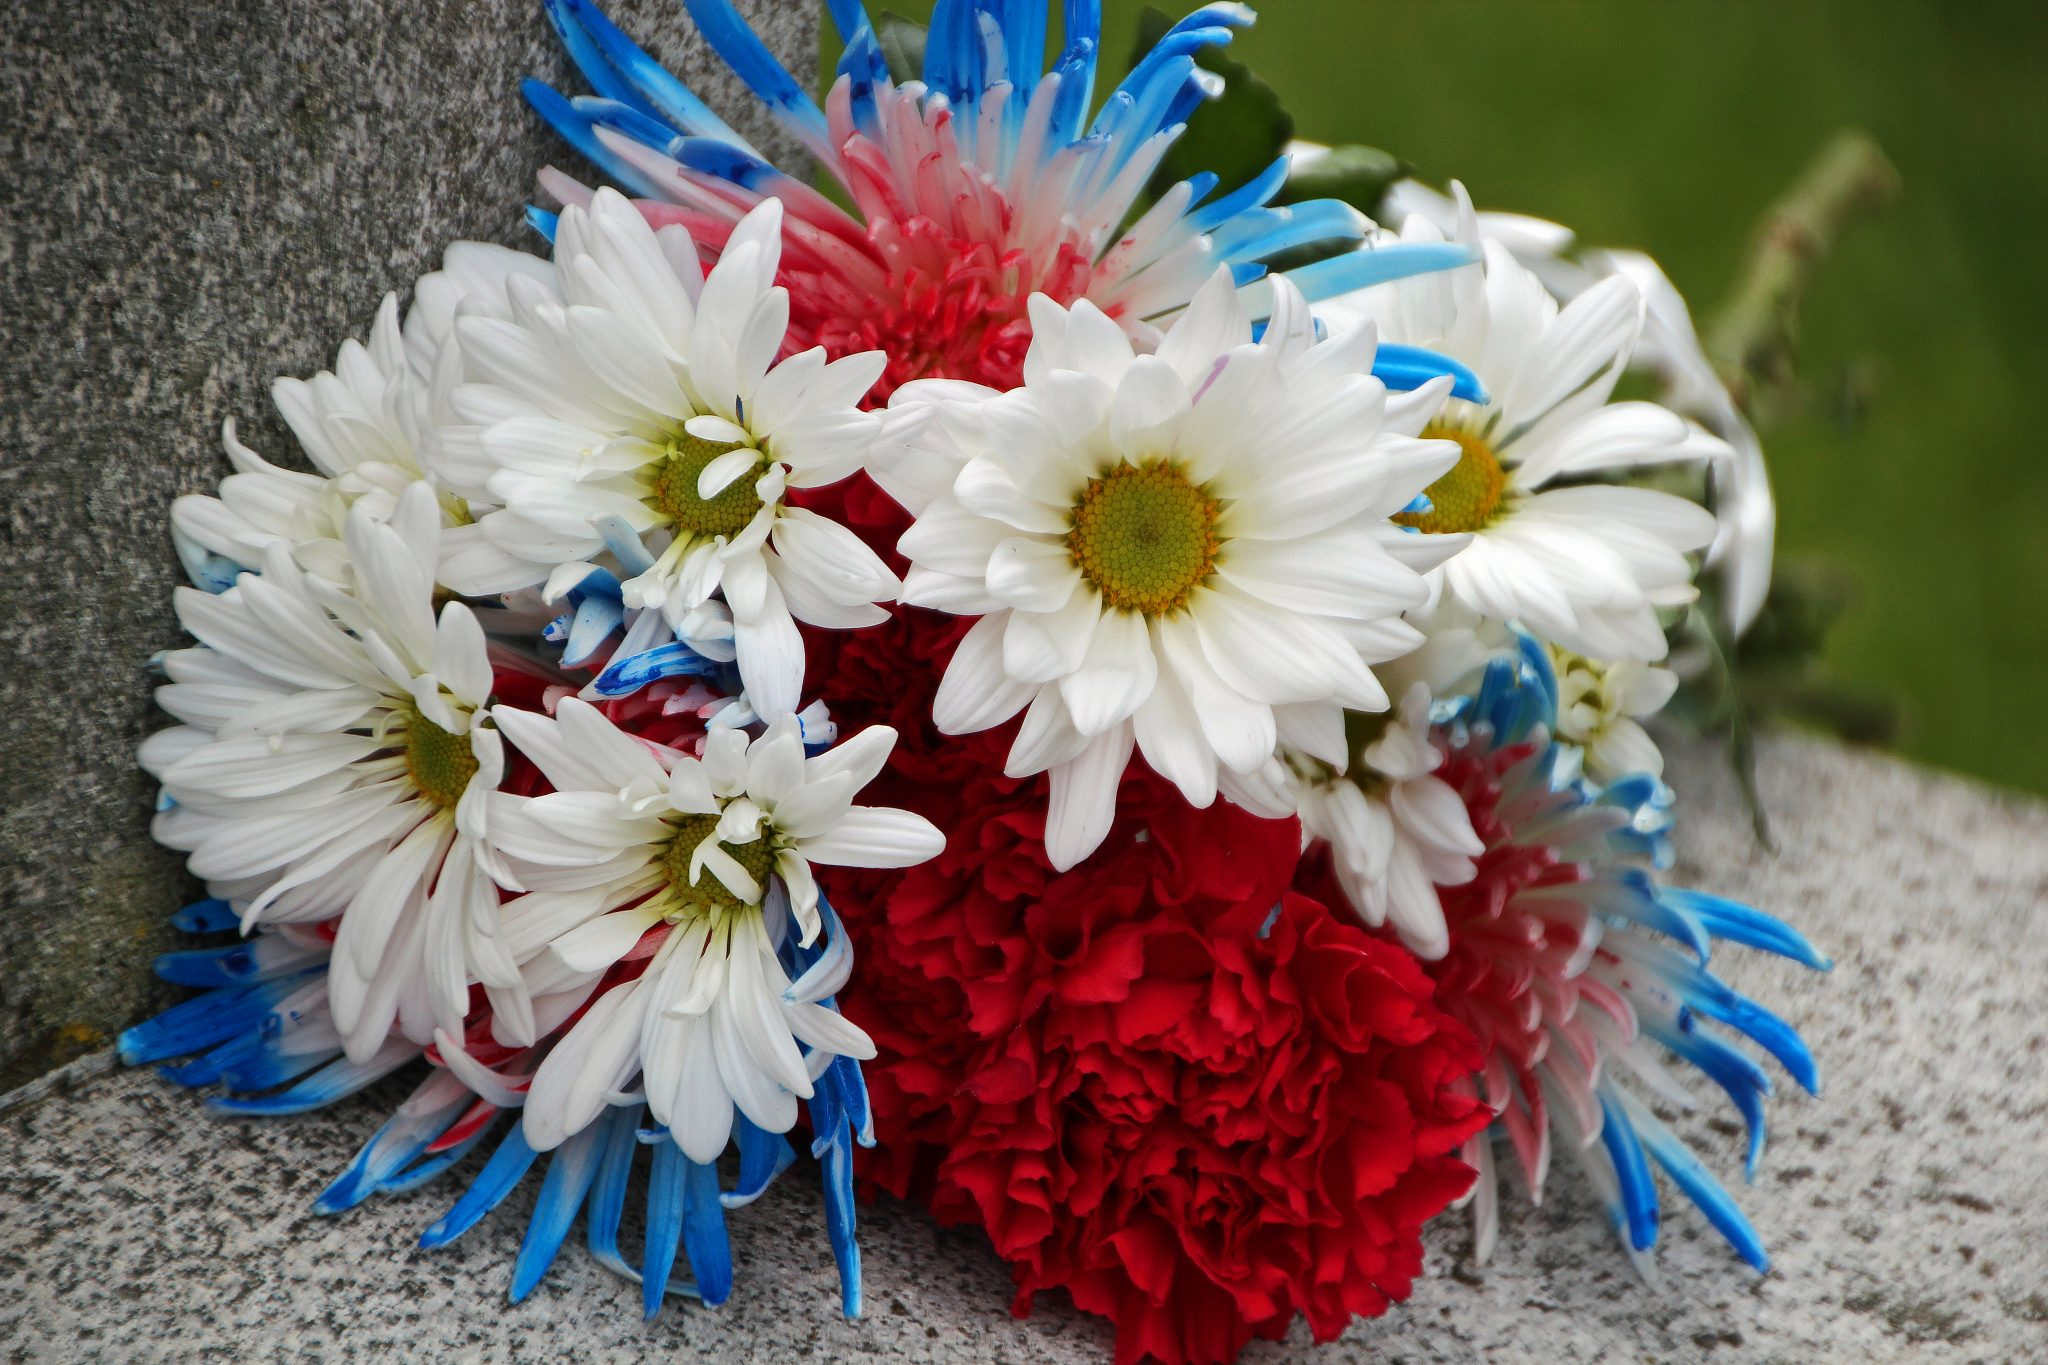 Memorial Day flowers at Civil War monument